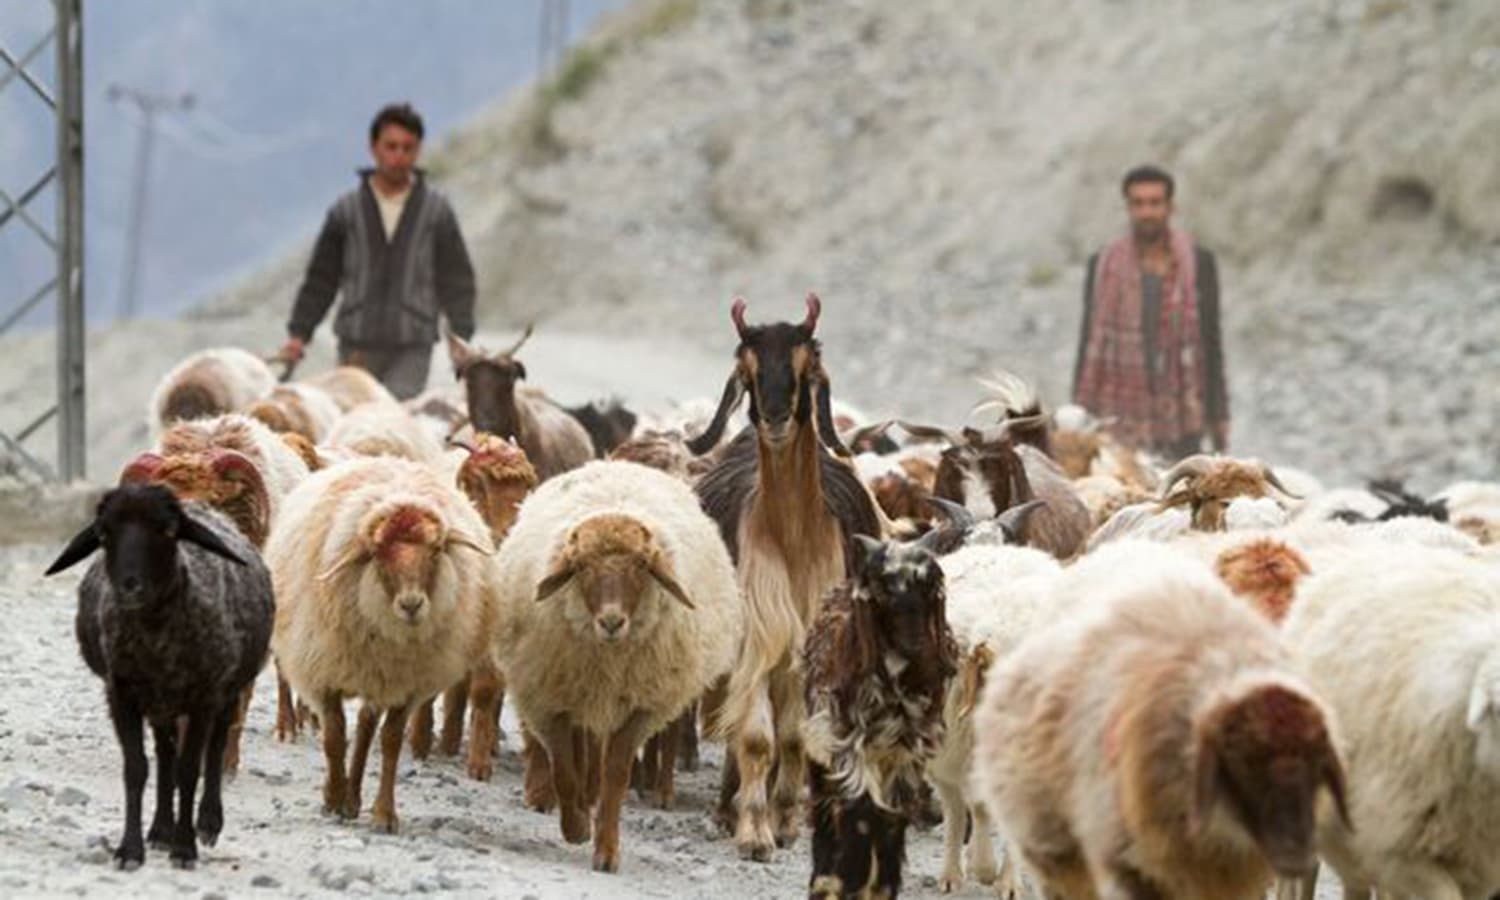 A local shepherd tending to his sheep near Khaplu. —Photo by Ghulam Rasool